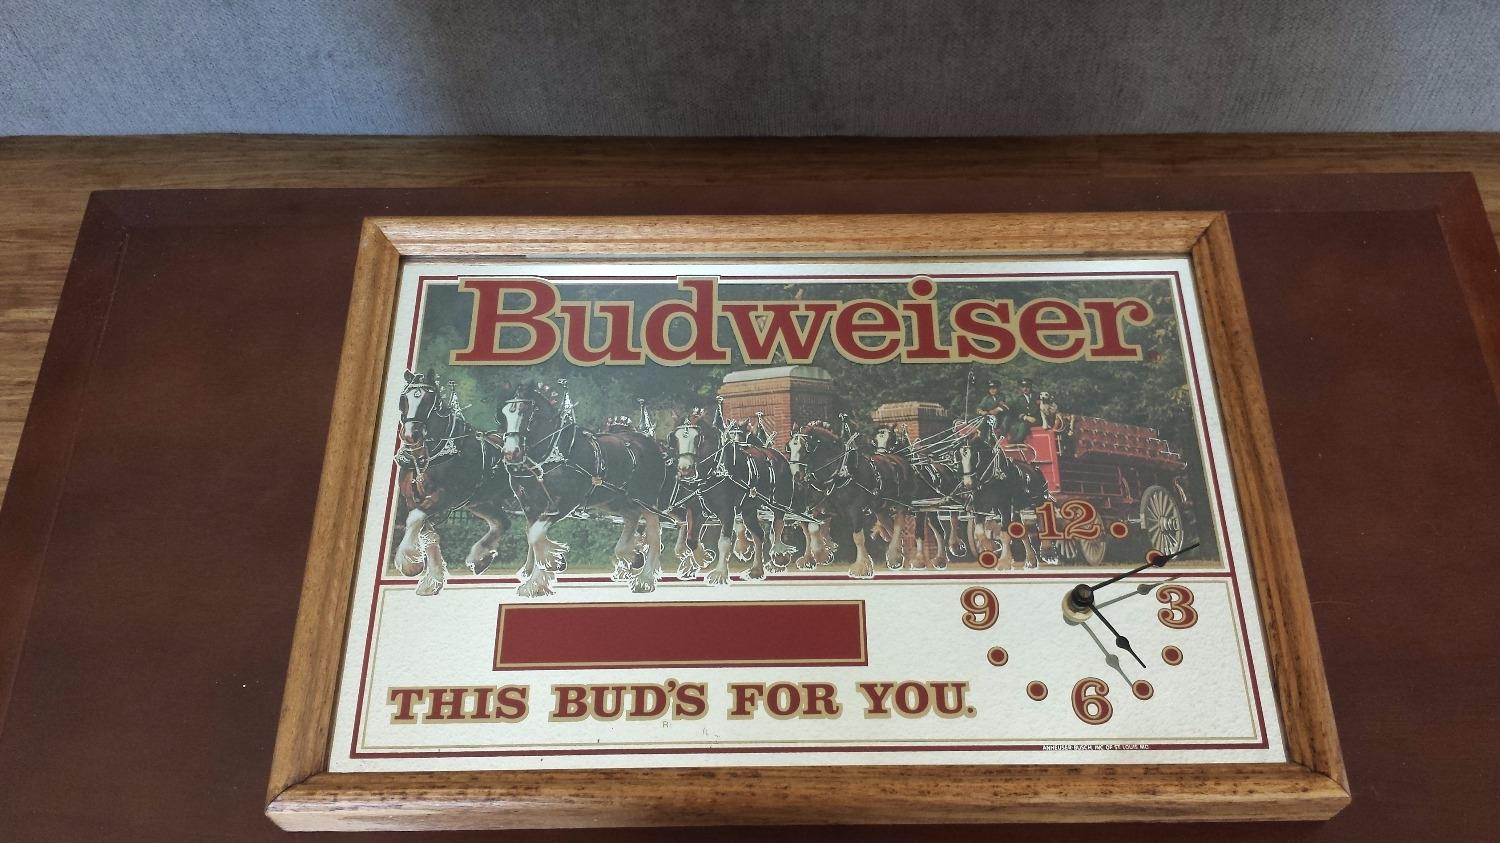 Find More 1975 Budweiser Quot This Bud S For You Quot Wood Framed